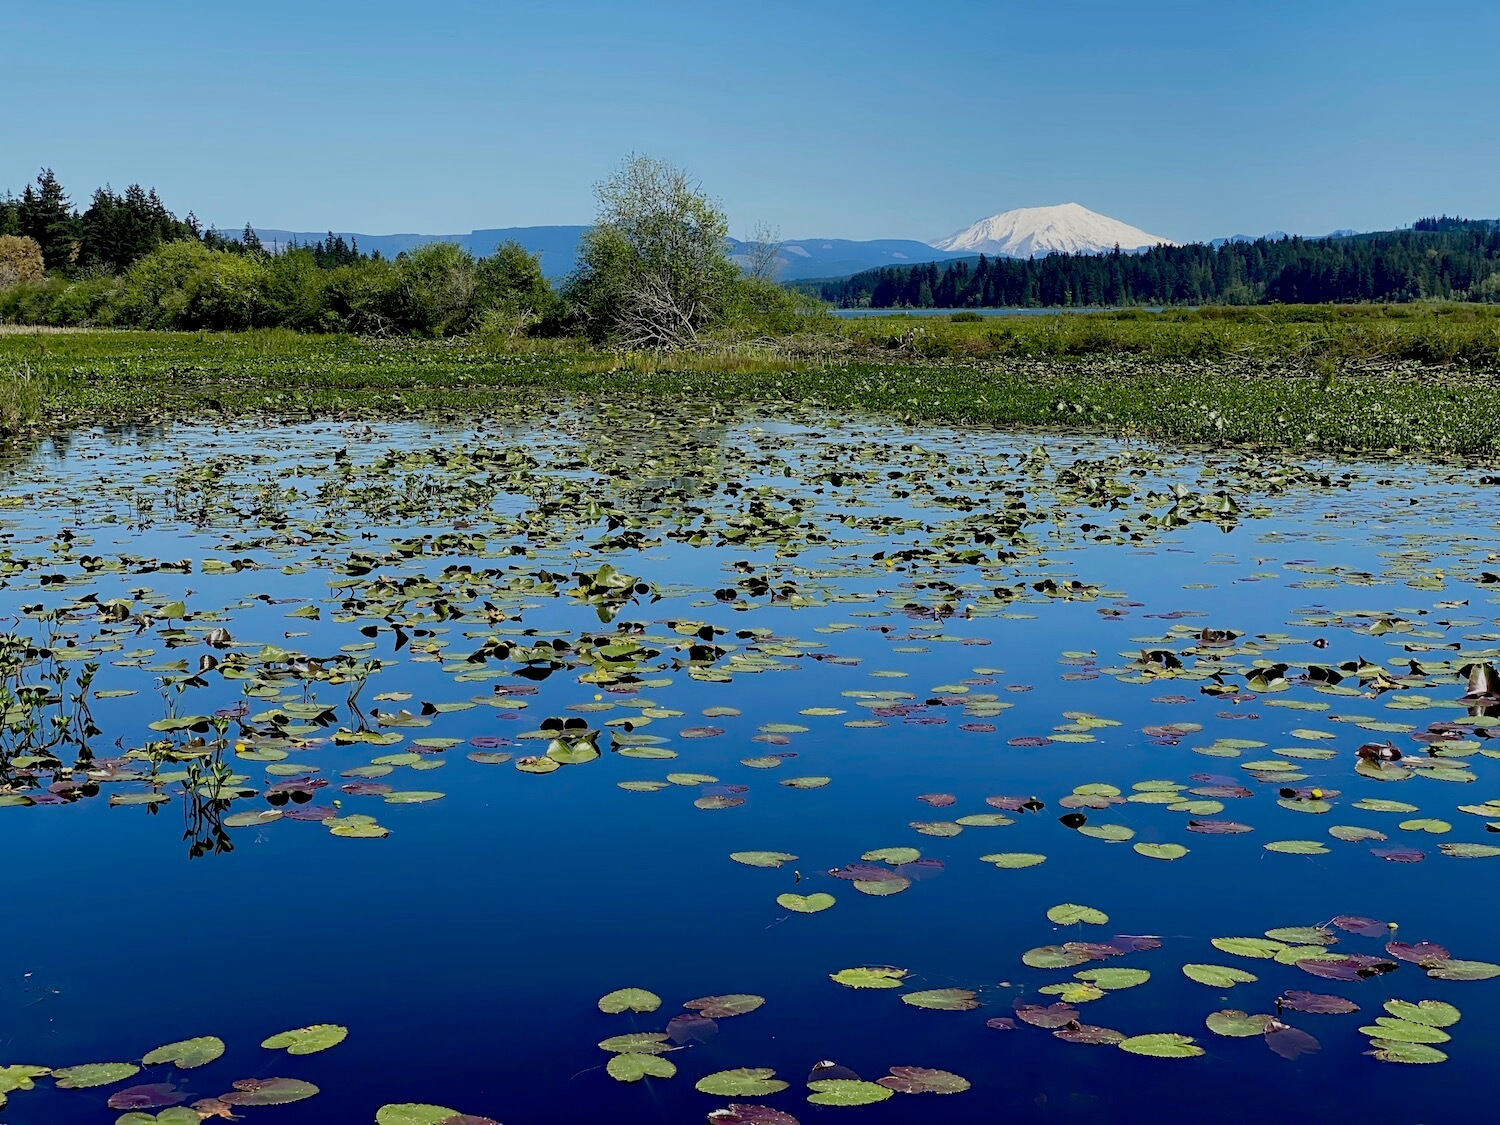 Snow covered Mount St. Helens viewed from Silver Lake.  The lake has an assortment of lily pads floating in the water that is a deep blue.  The lake is surrounded by green brush and the sky above the bright mountain is blue.